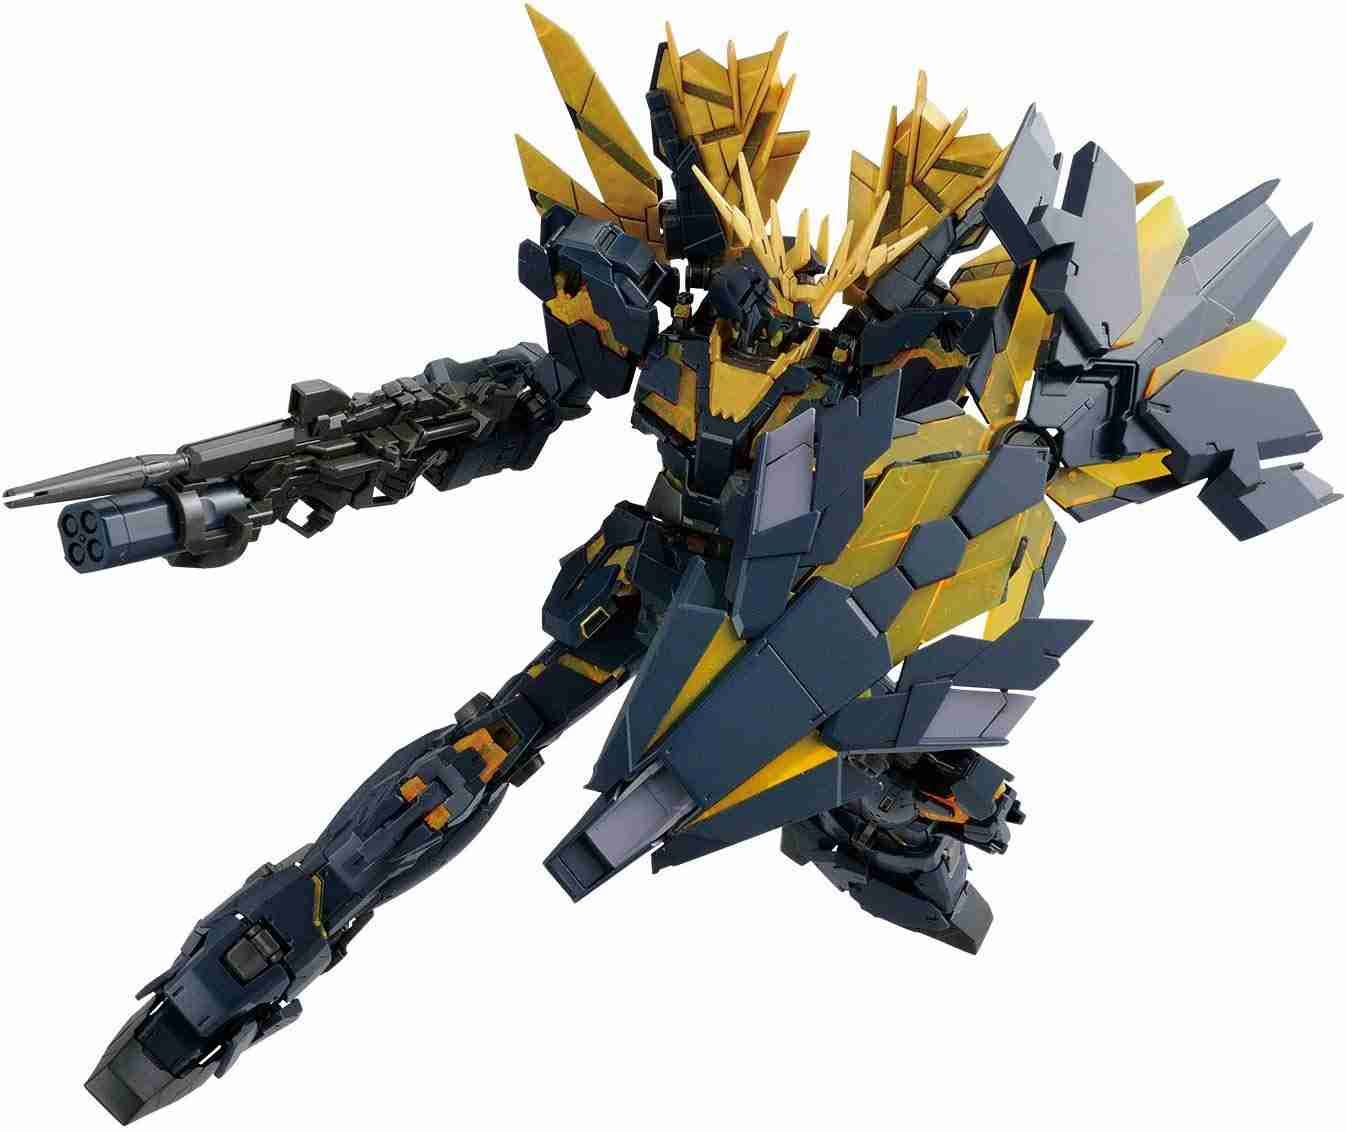 Bandai RG Gundam Uc Unicorn Gundam 02 Banshee Norn Model Kit - 1:144 Scale